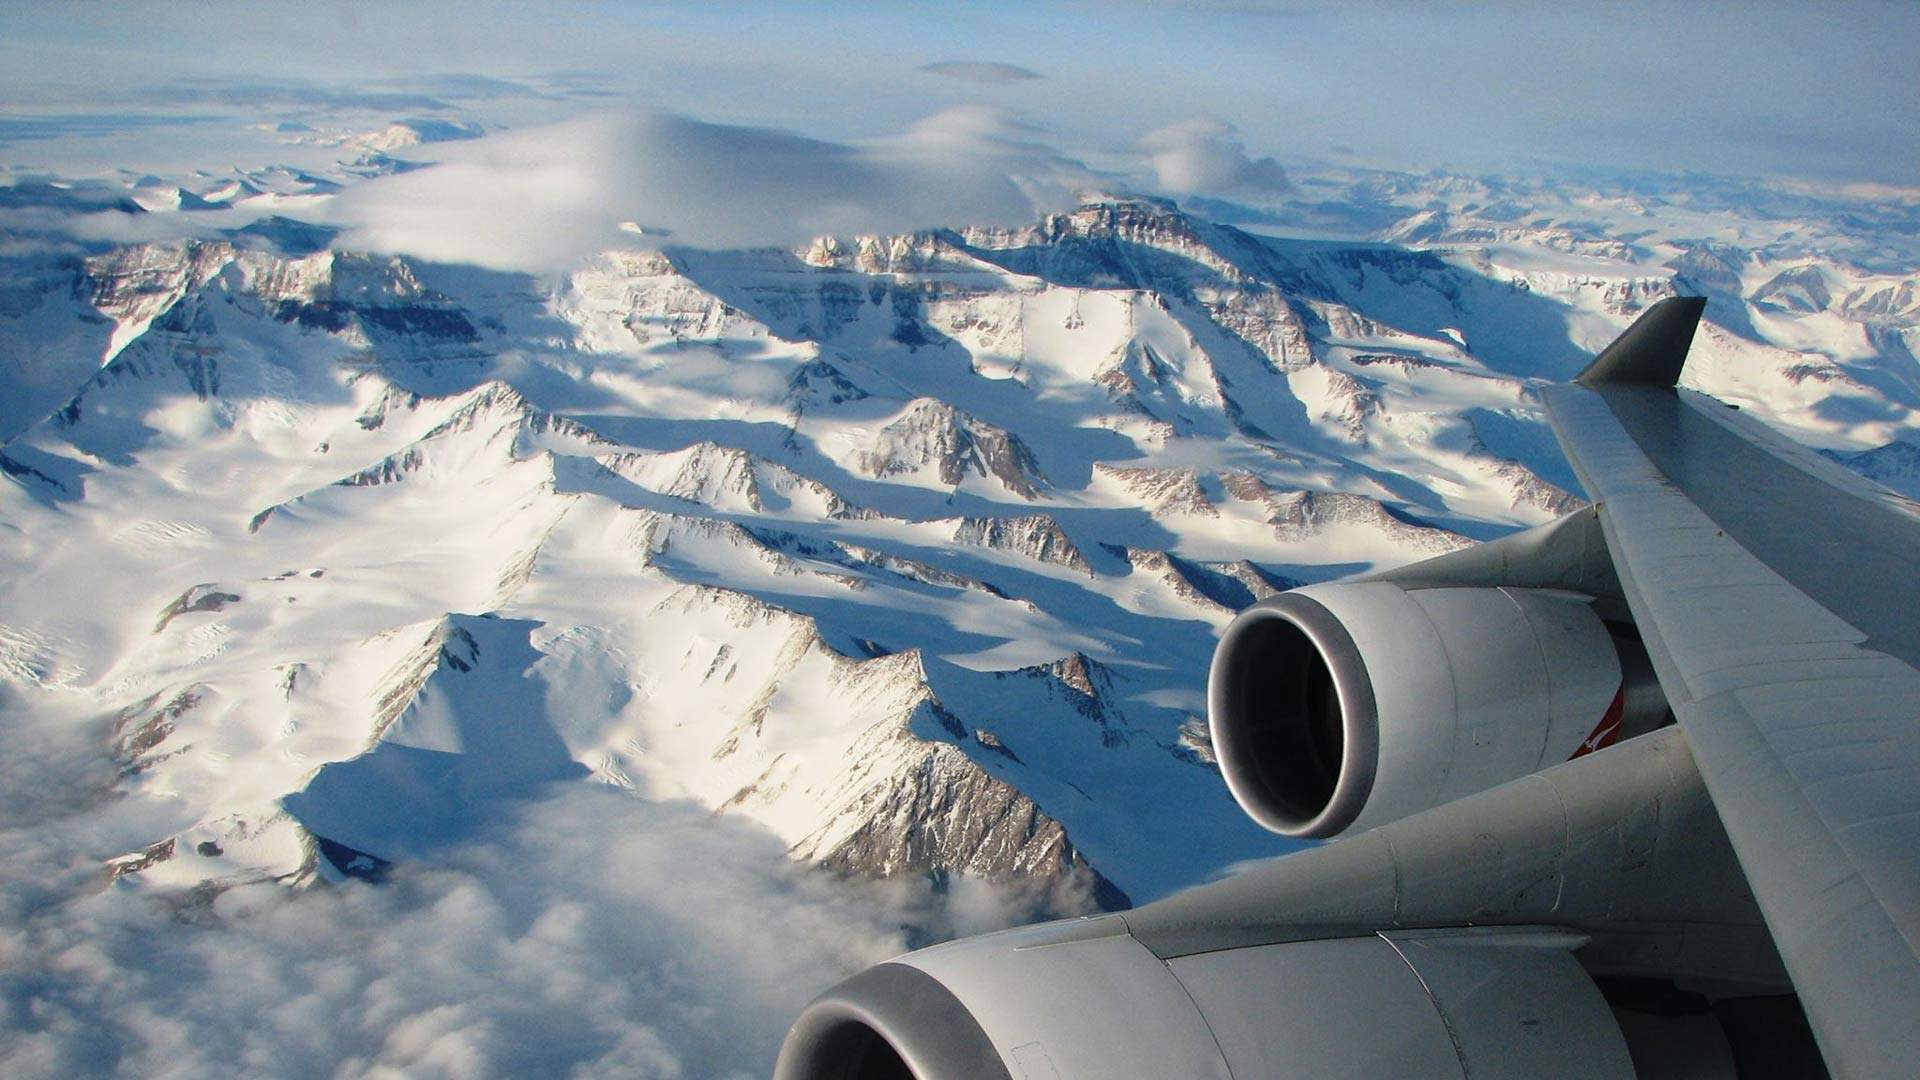 You Can Tour Antarctica on a Day Trip Thanks to This Indulgent Sight-Seeing Plane Tour